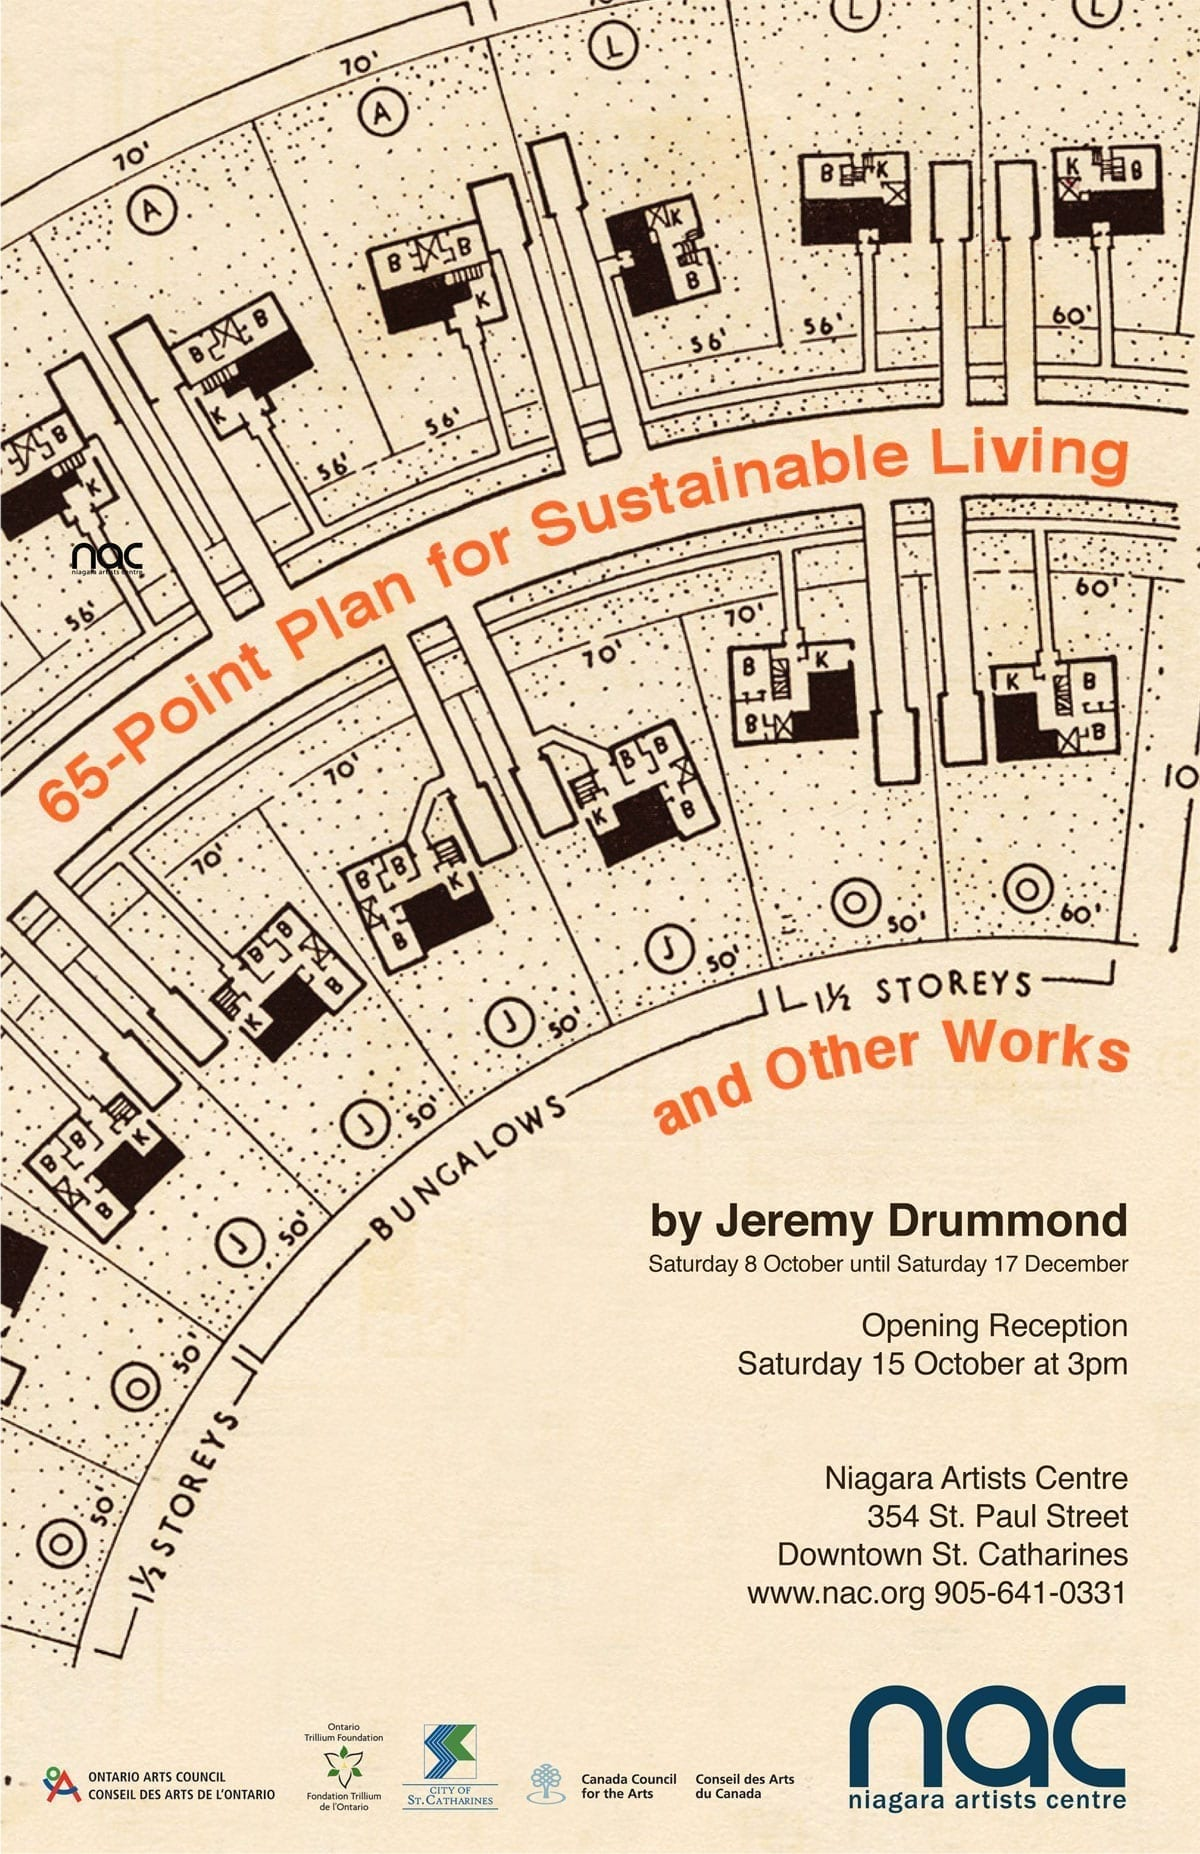 65-Point Plan for Sustainable Living & Other Works